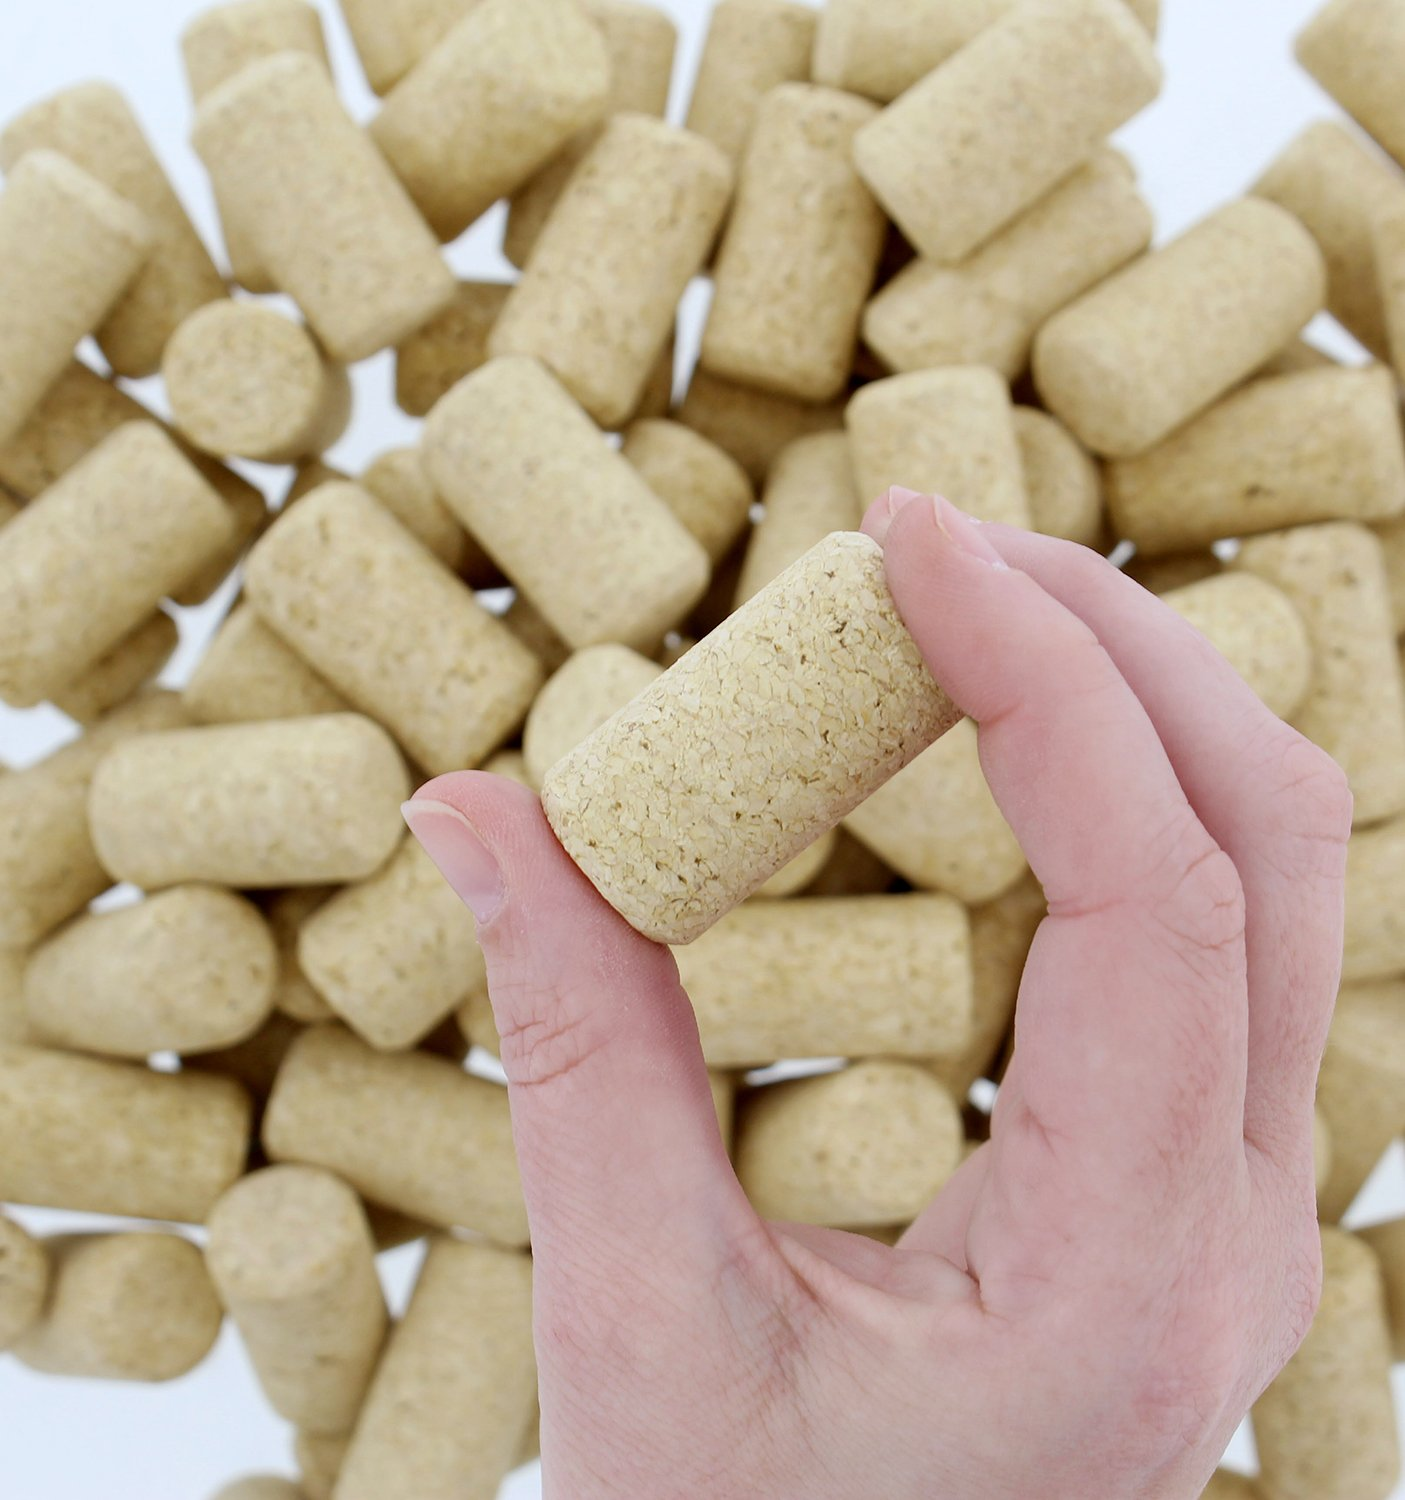 """Premium Bulk Wine Corks 1-¾"""" x 15/16"""" Fit Most Bottles, 100 Pack, Natural Straight & Non-Recycled #9 by G Francis (Image #3)"""